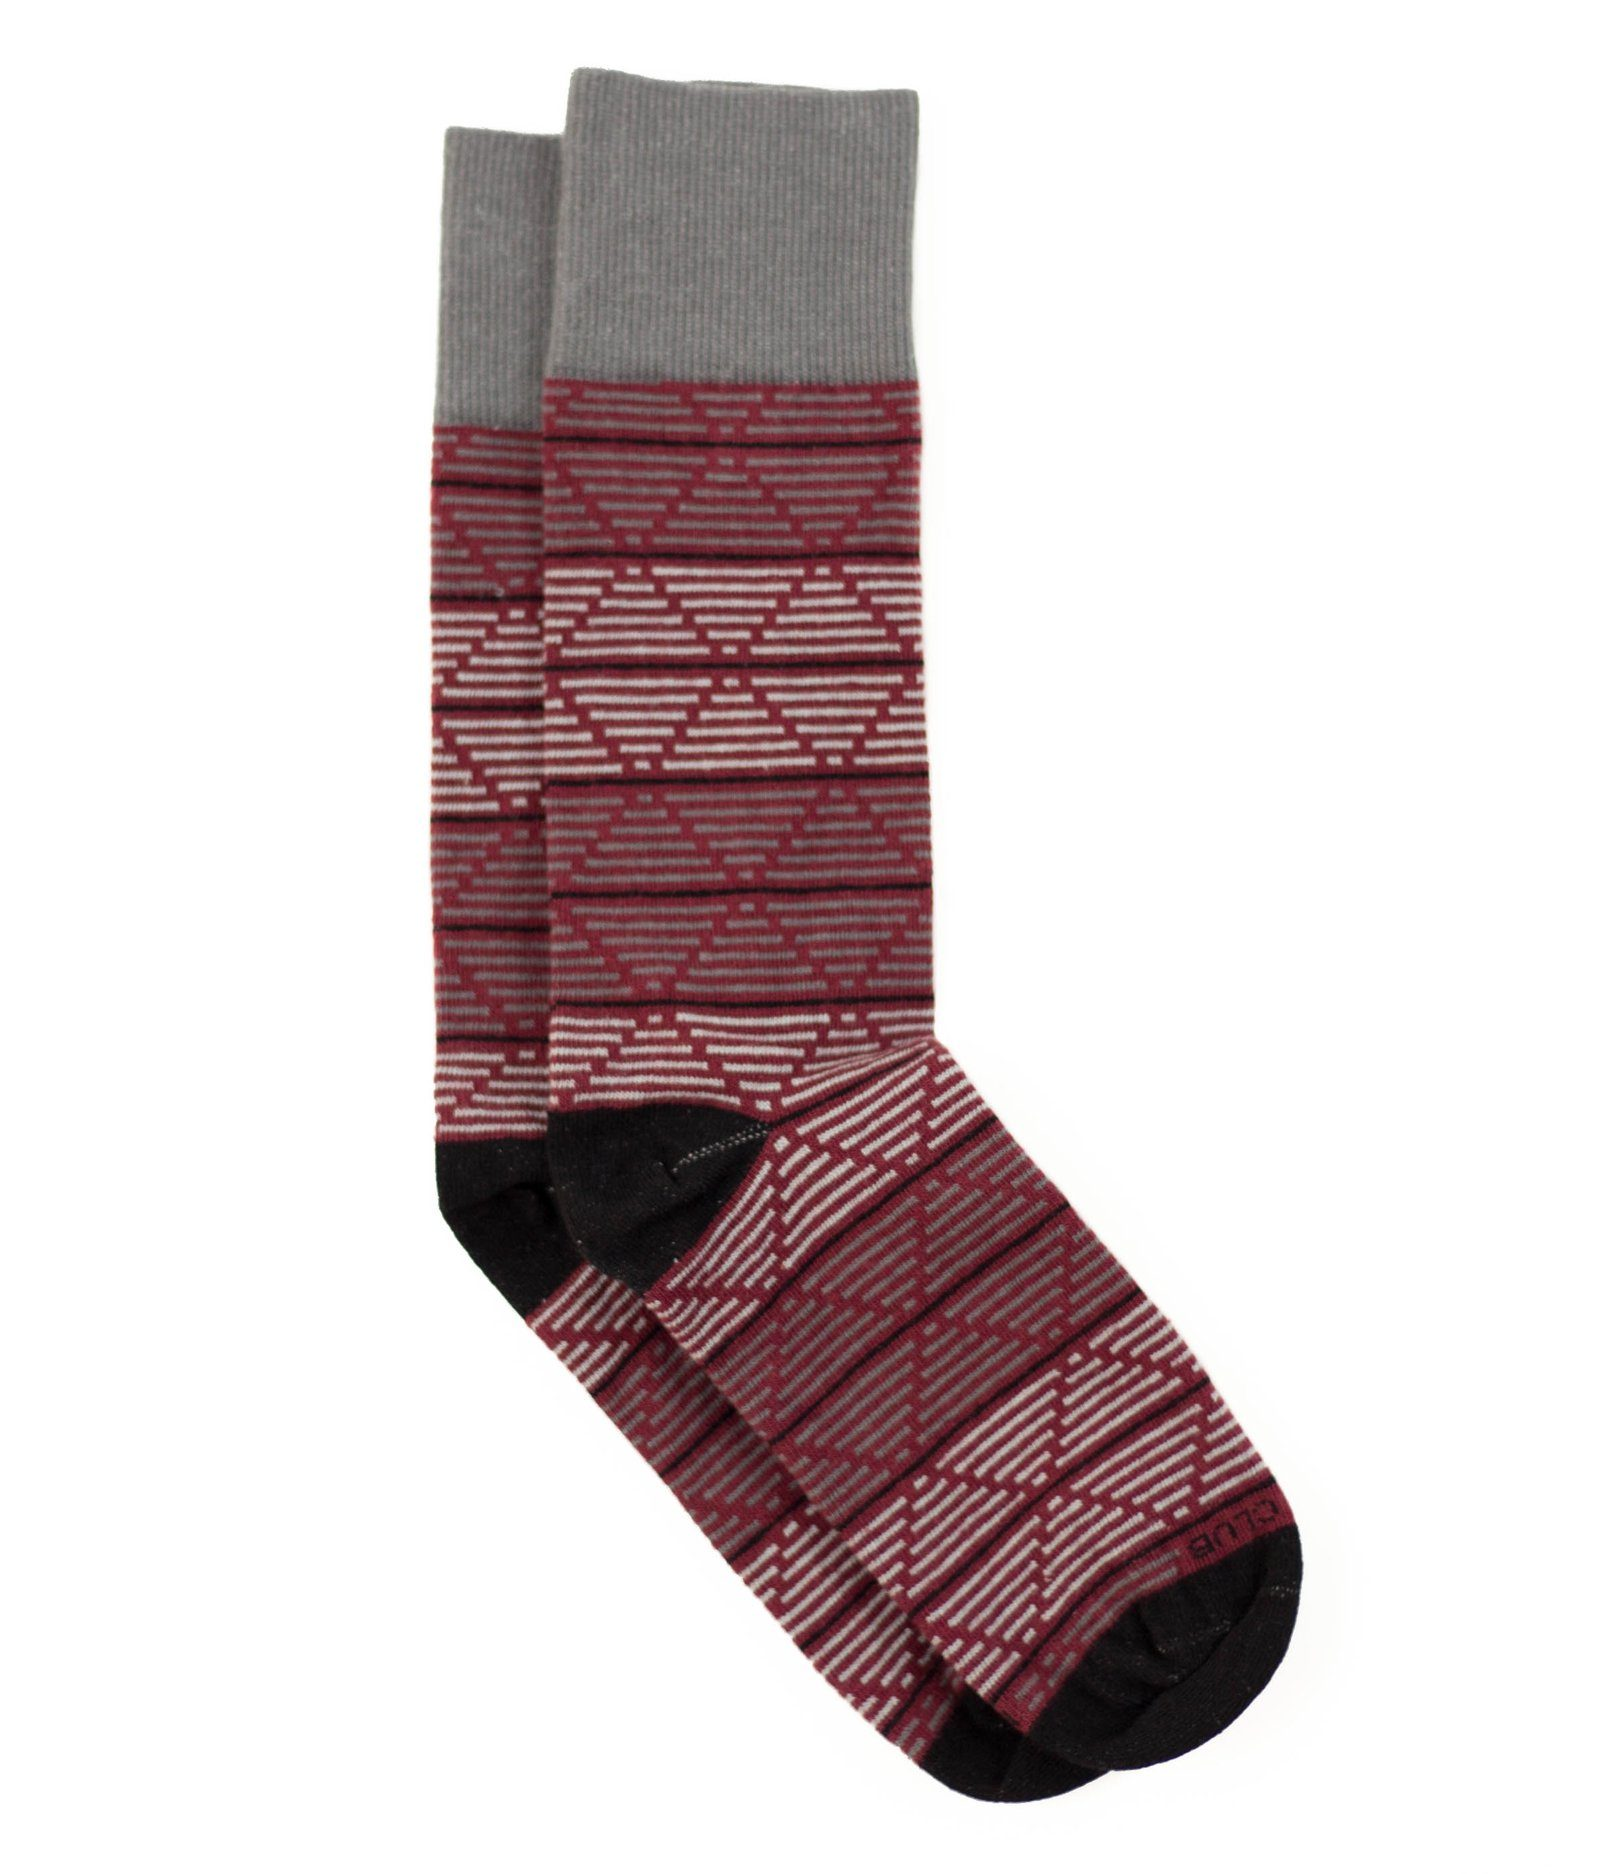 The Daedalus - Maroon - Sock Club Store